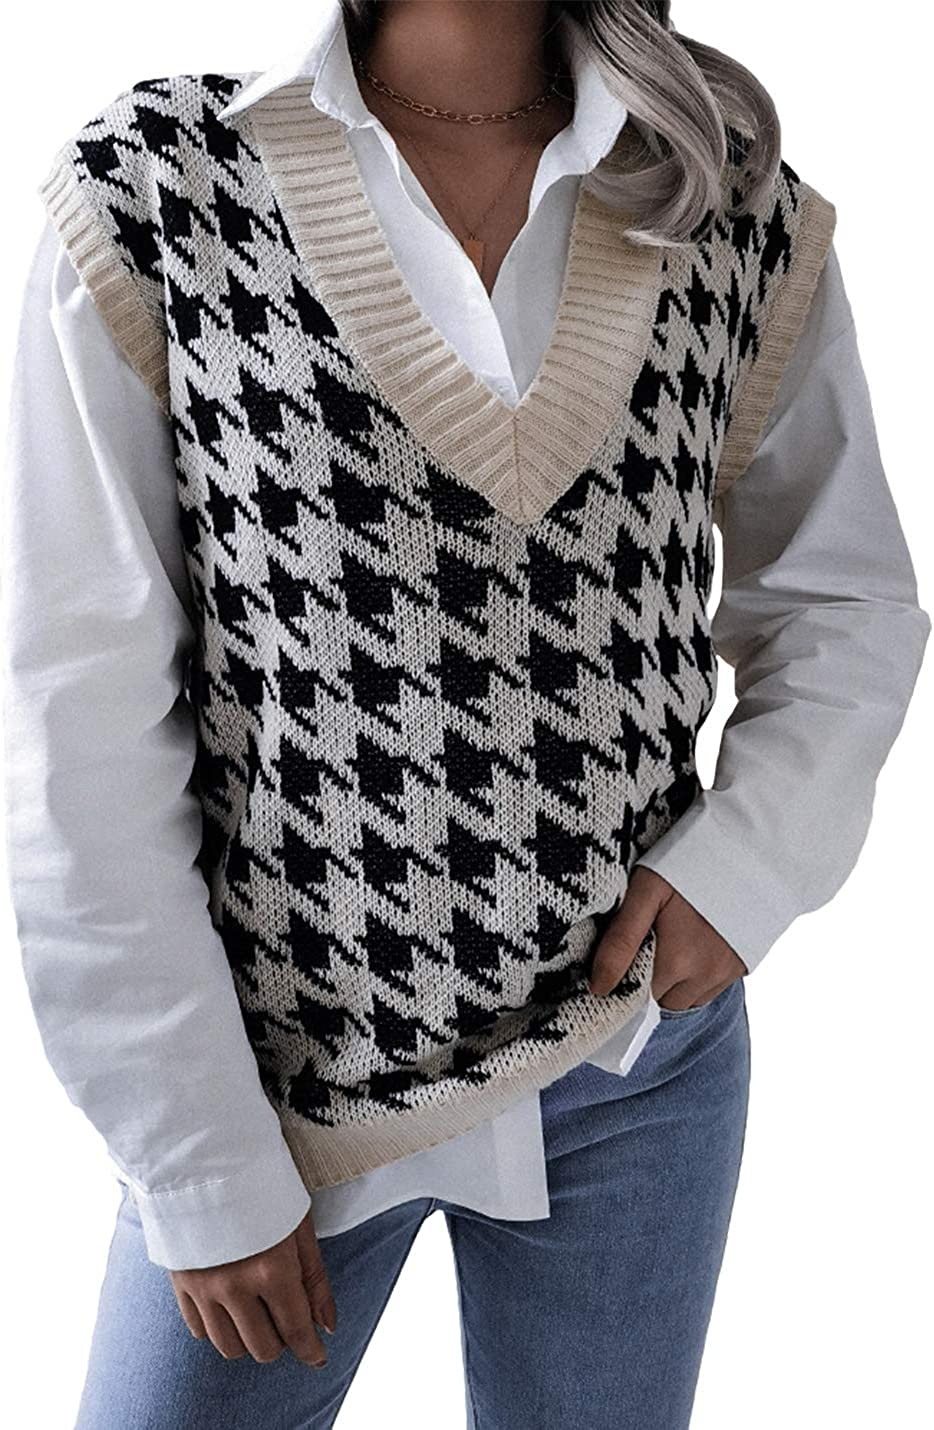 Gihuo Women's V Neck Loose Pullover Houndstooth Sweater Vest